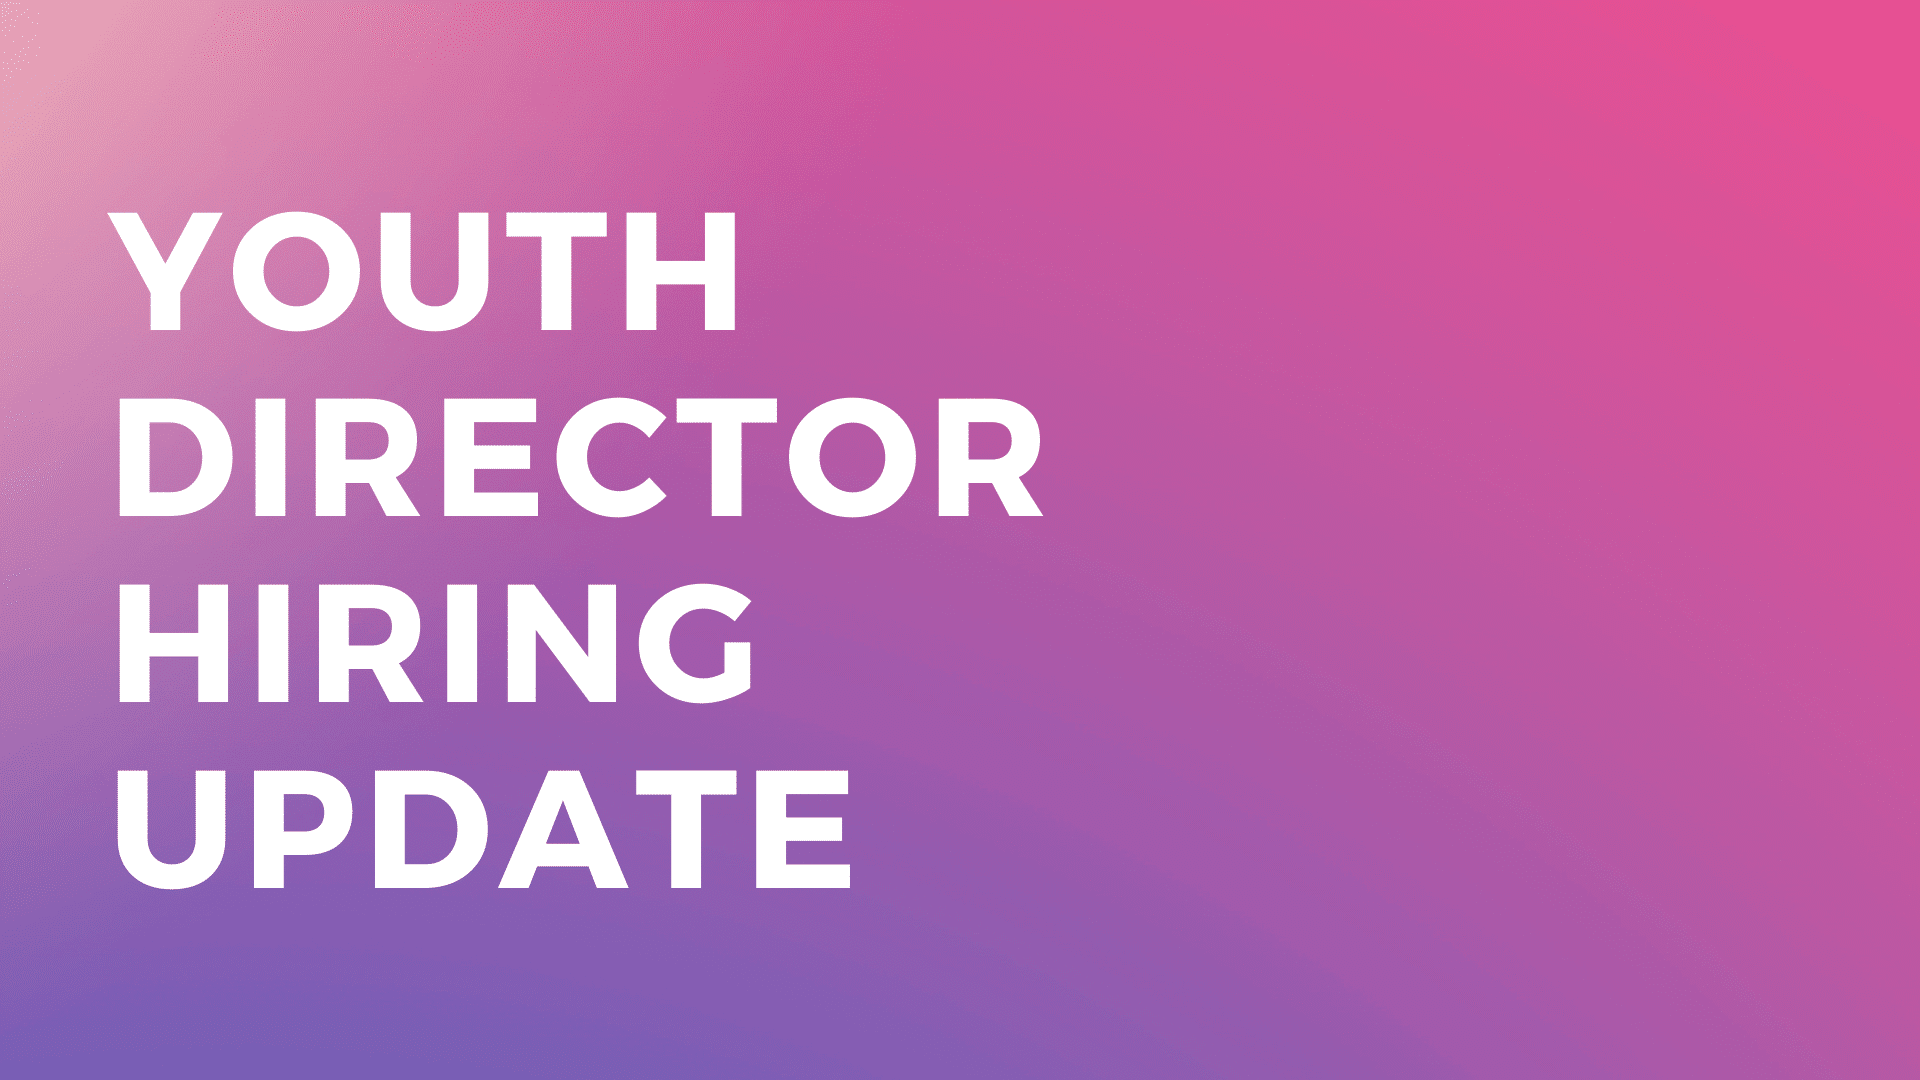 Youth Director Hiring Update